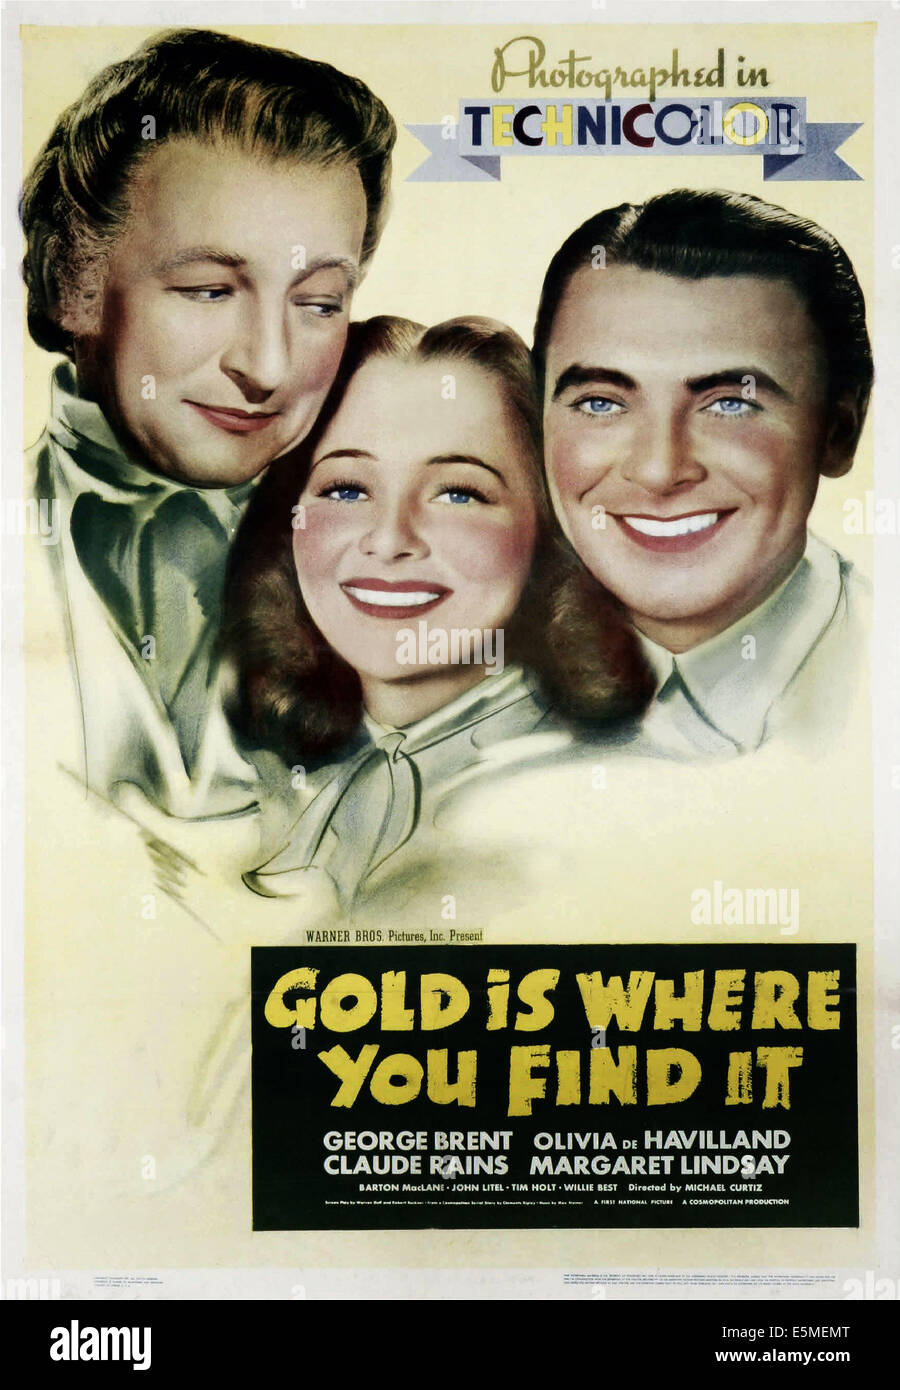 GOLD IS WHERE YOU FIND IT, US poster art, from left: Claude Rains, Olivia De Havilland, George Brent, 1938 Stock Photo